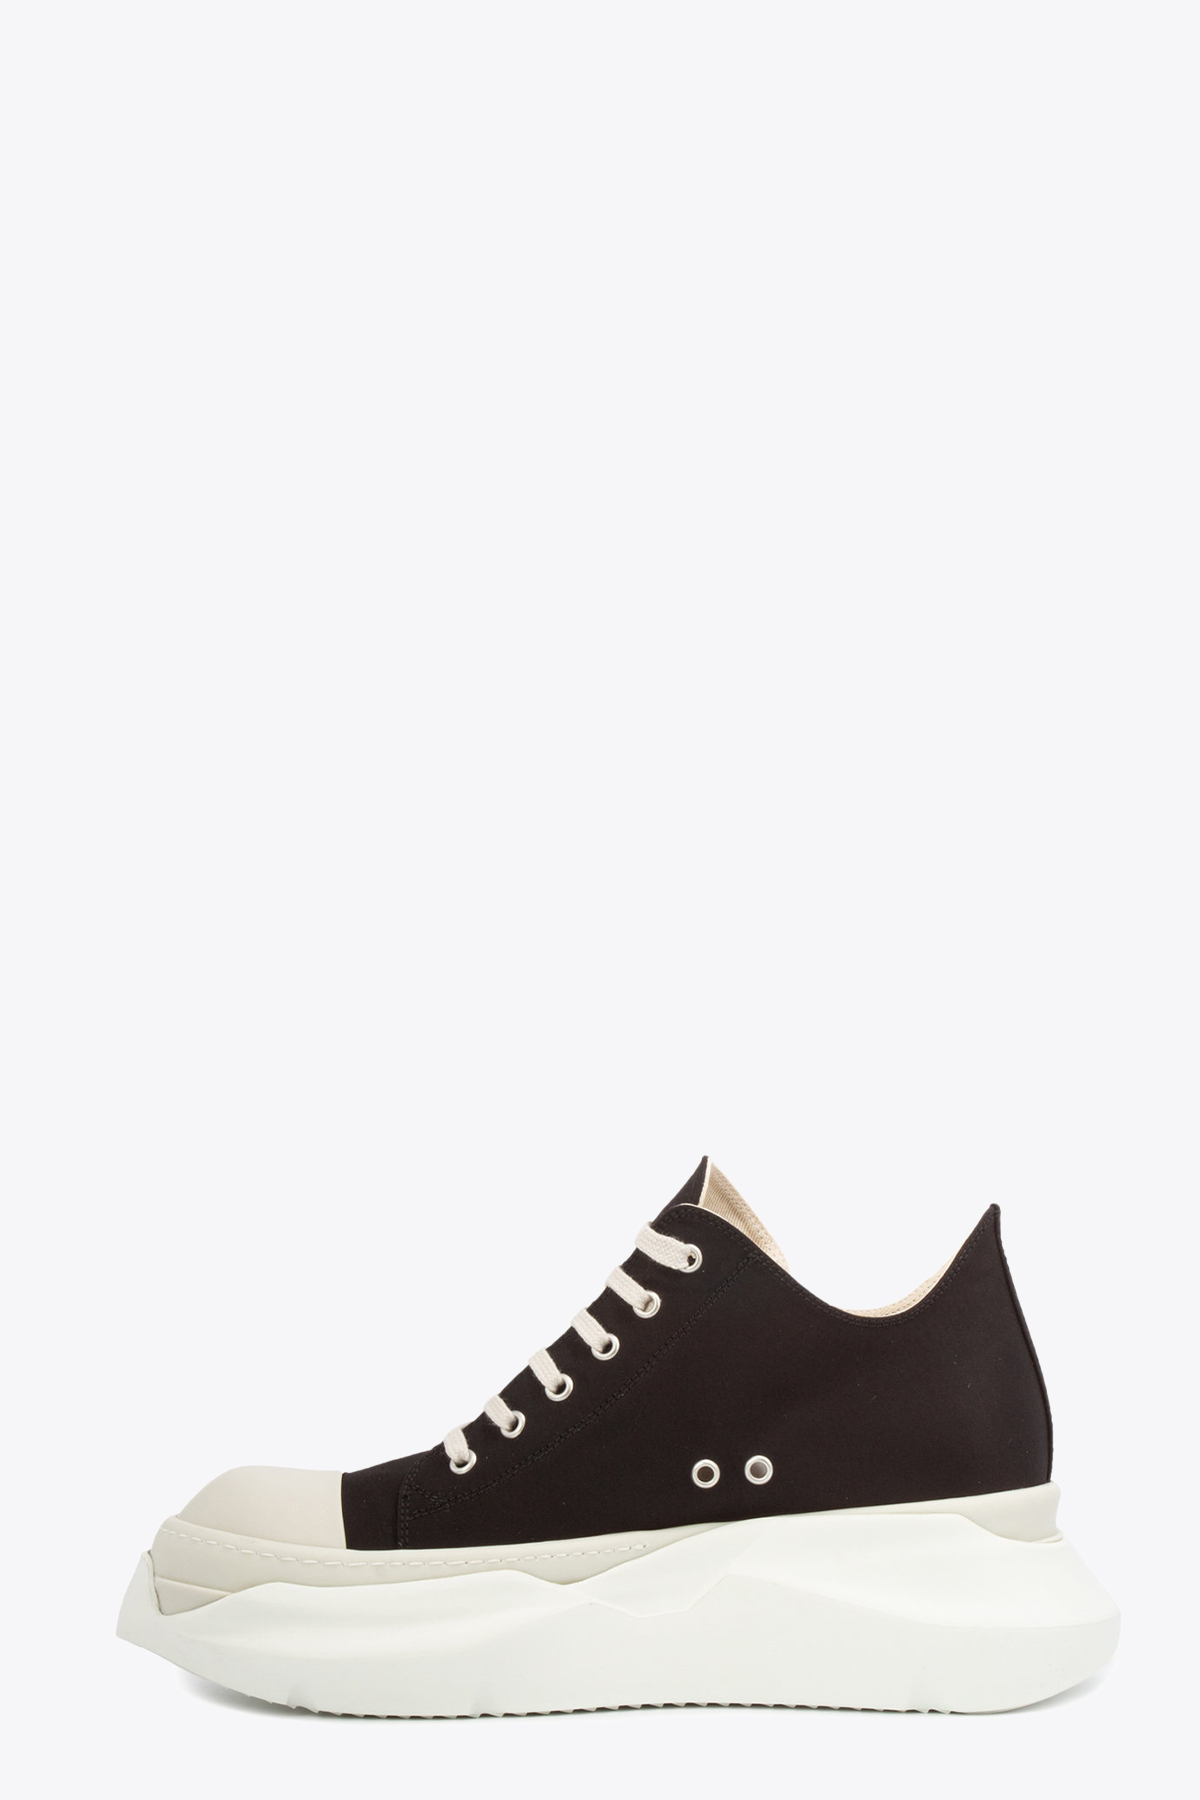 ABSTRACT LOW SNEAKERS RICK OWENS-DRKSHDW   10000039   DS21S2842 TNAP ABSTRACT LOW SNEAKERS91111